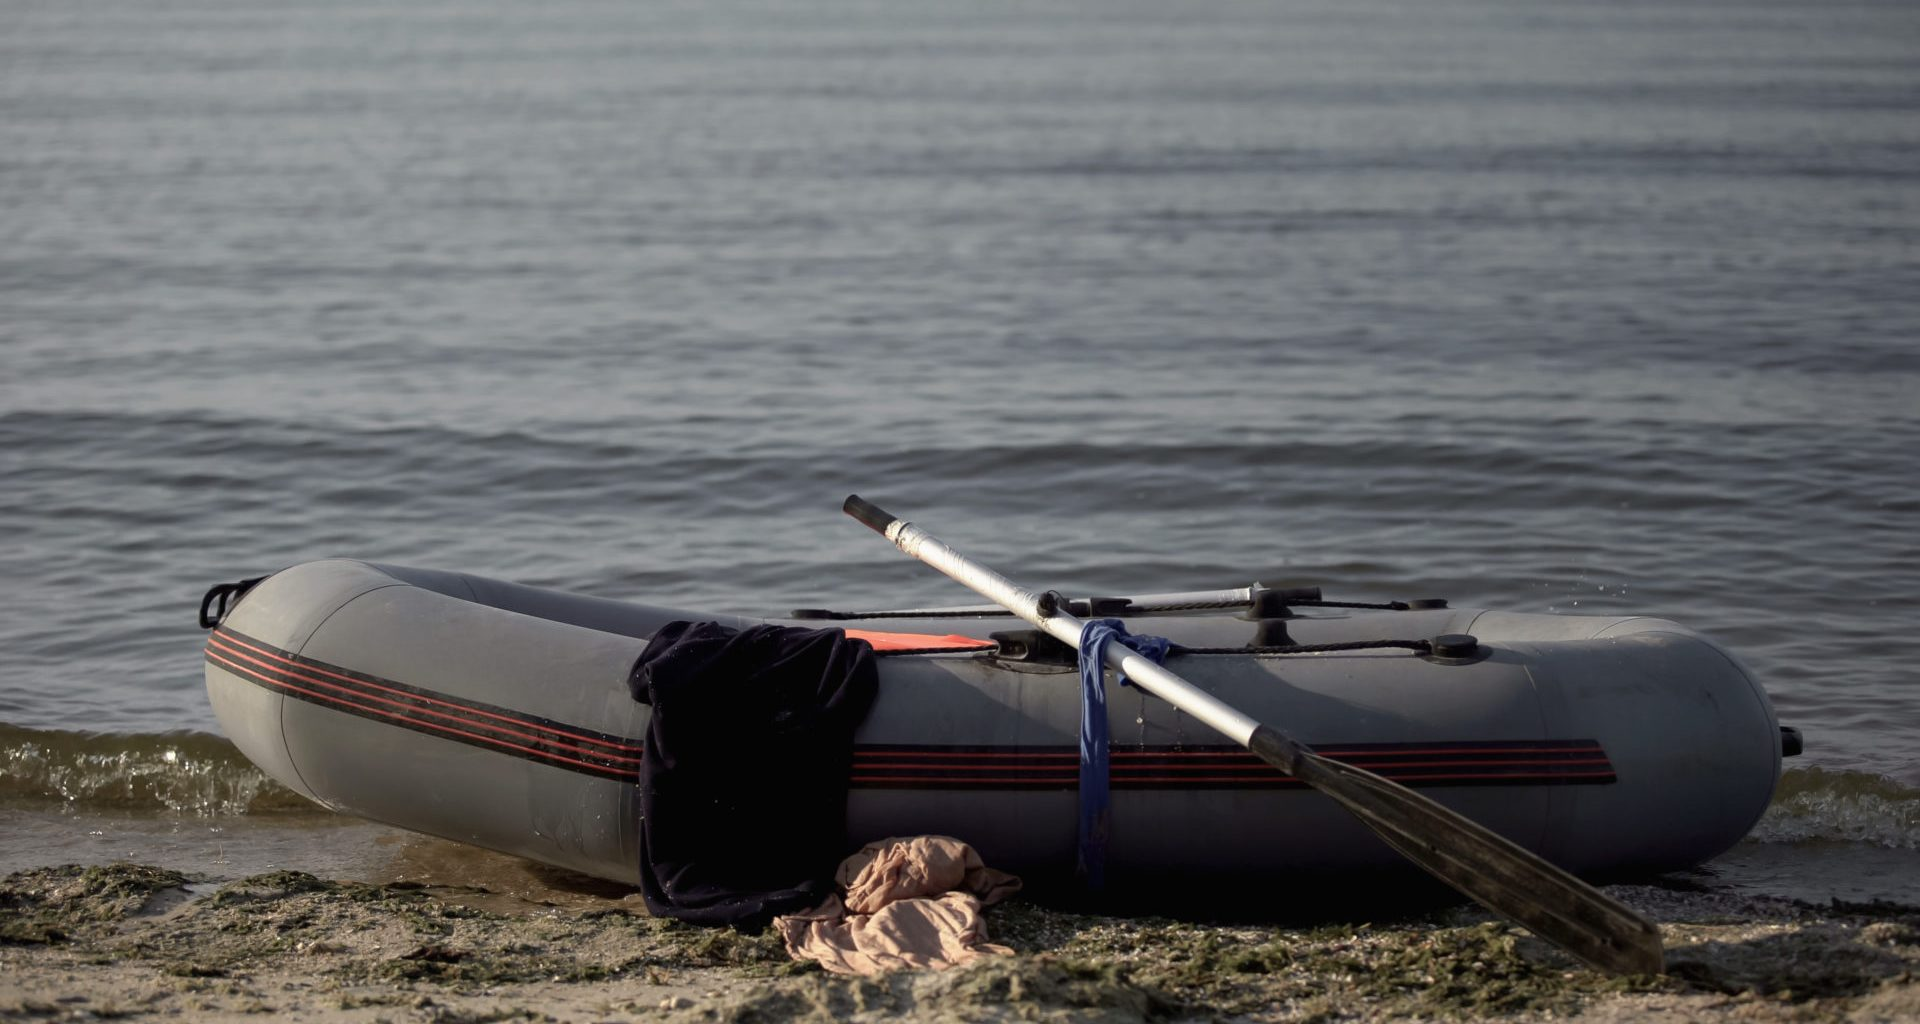 'All I could see was water': Asylum journeys across the channel 8